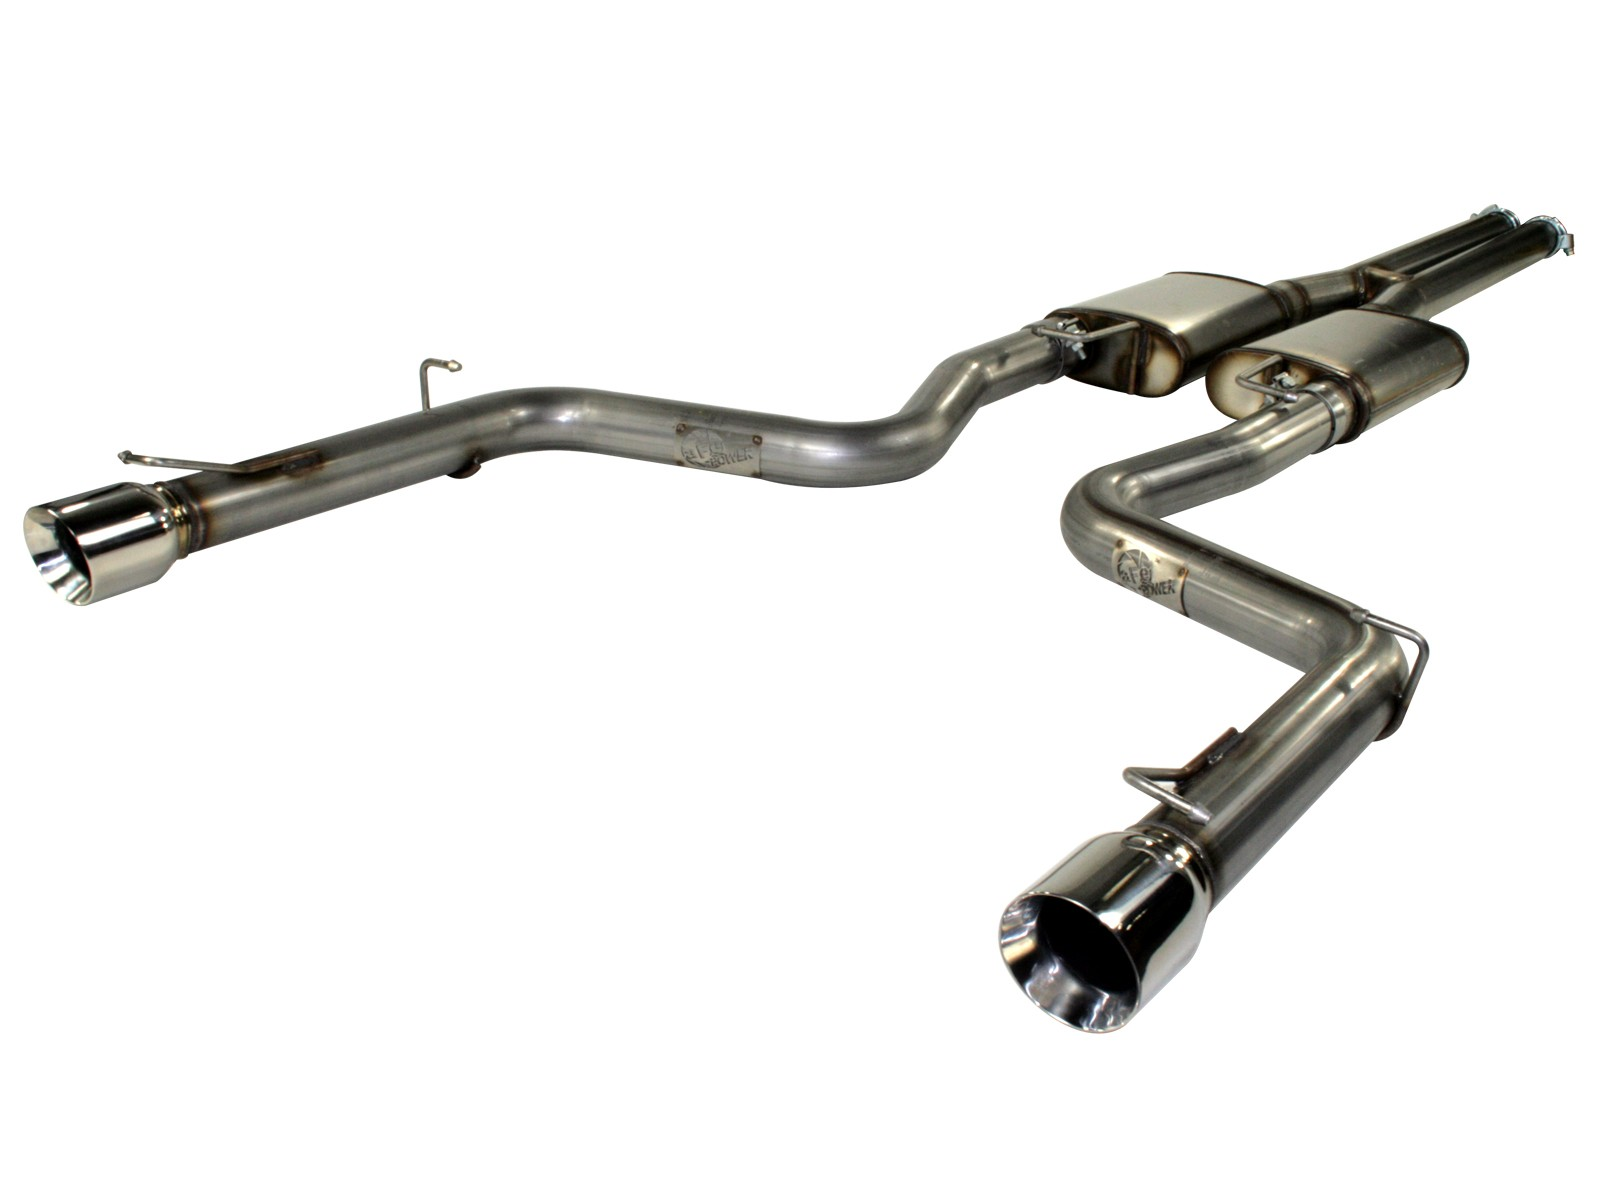 "aFe POWER 49-42024 MACH Force-Xp 3"" 409 Stainless Steel Cat-Back Exhaust System"